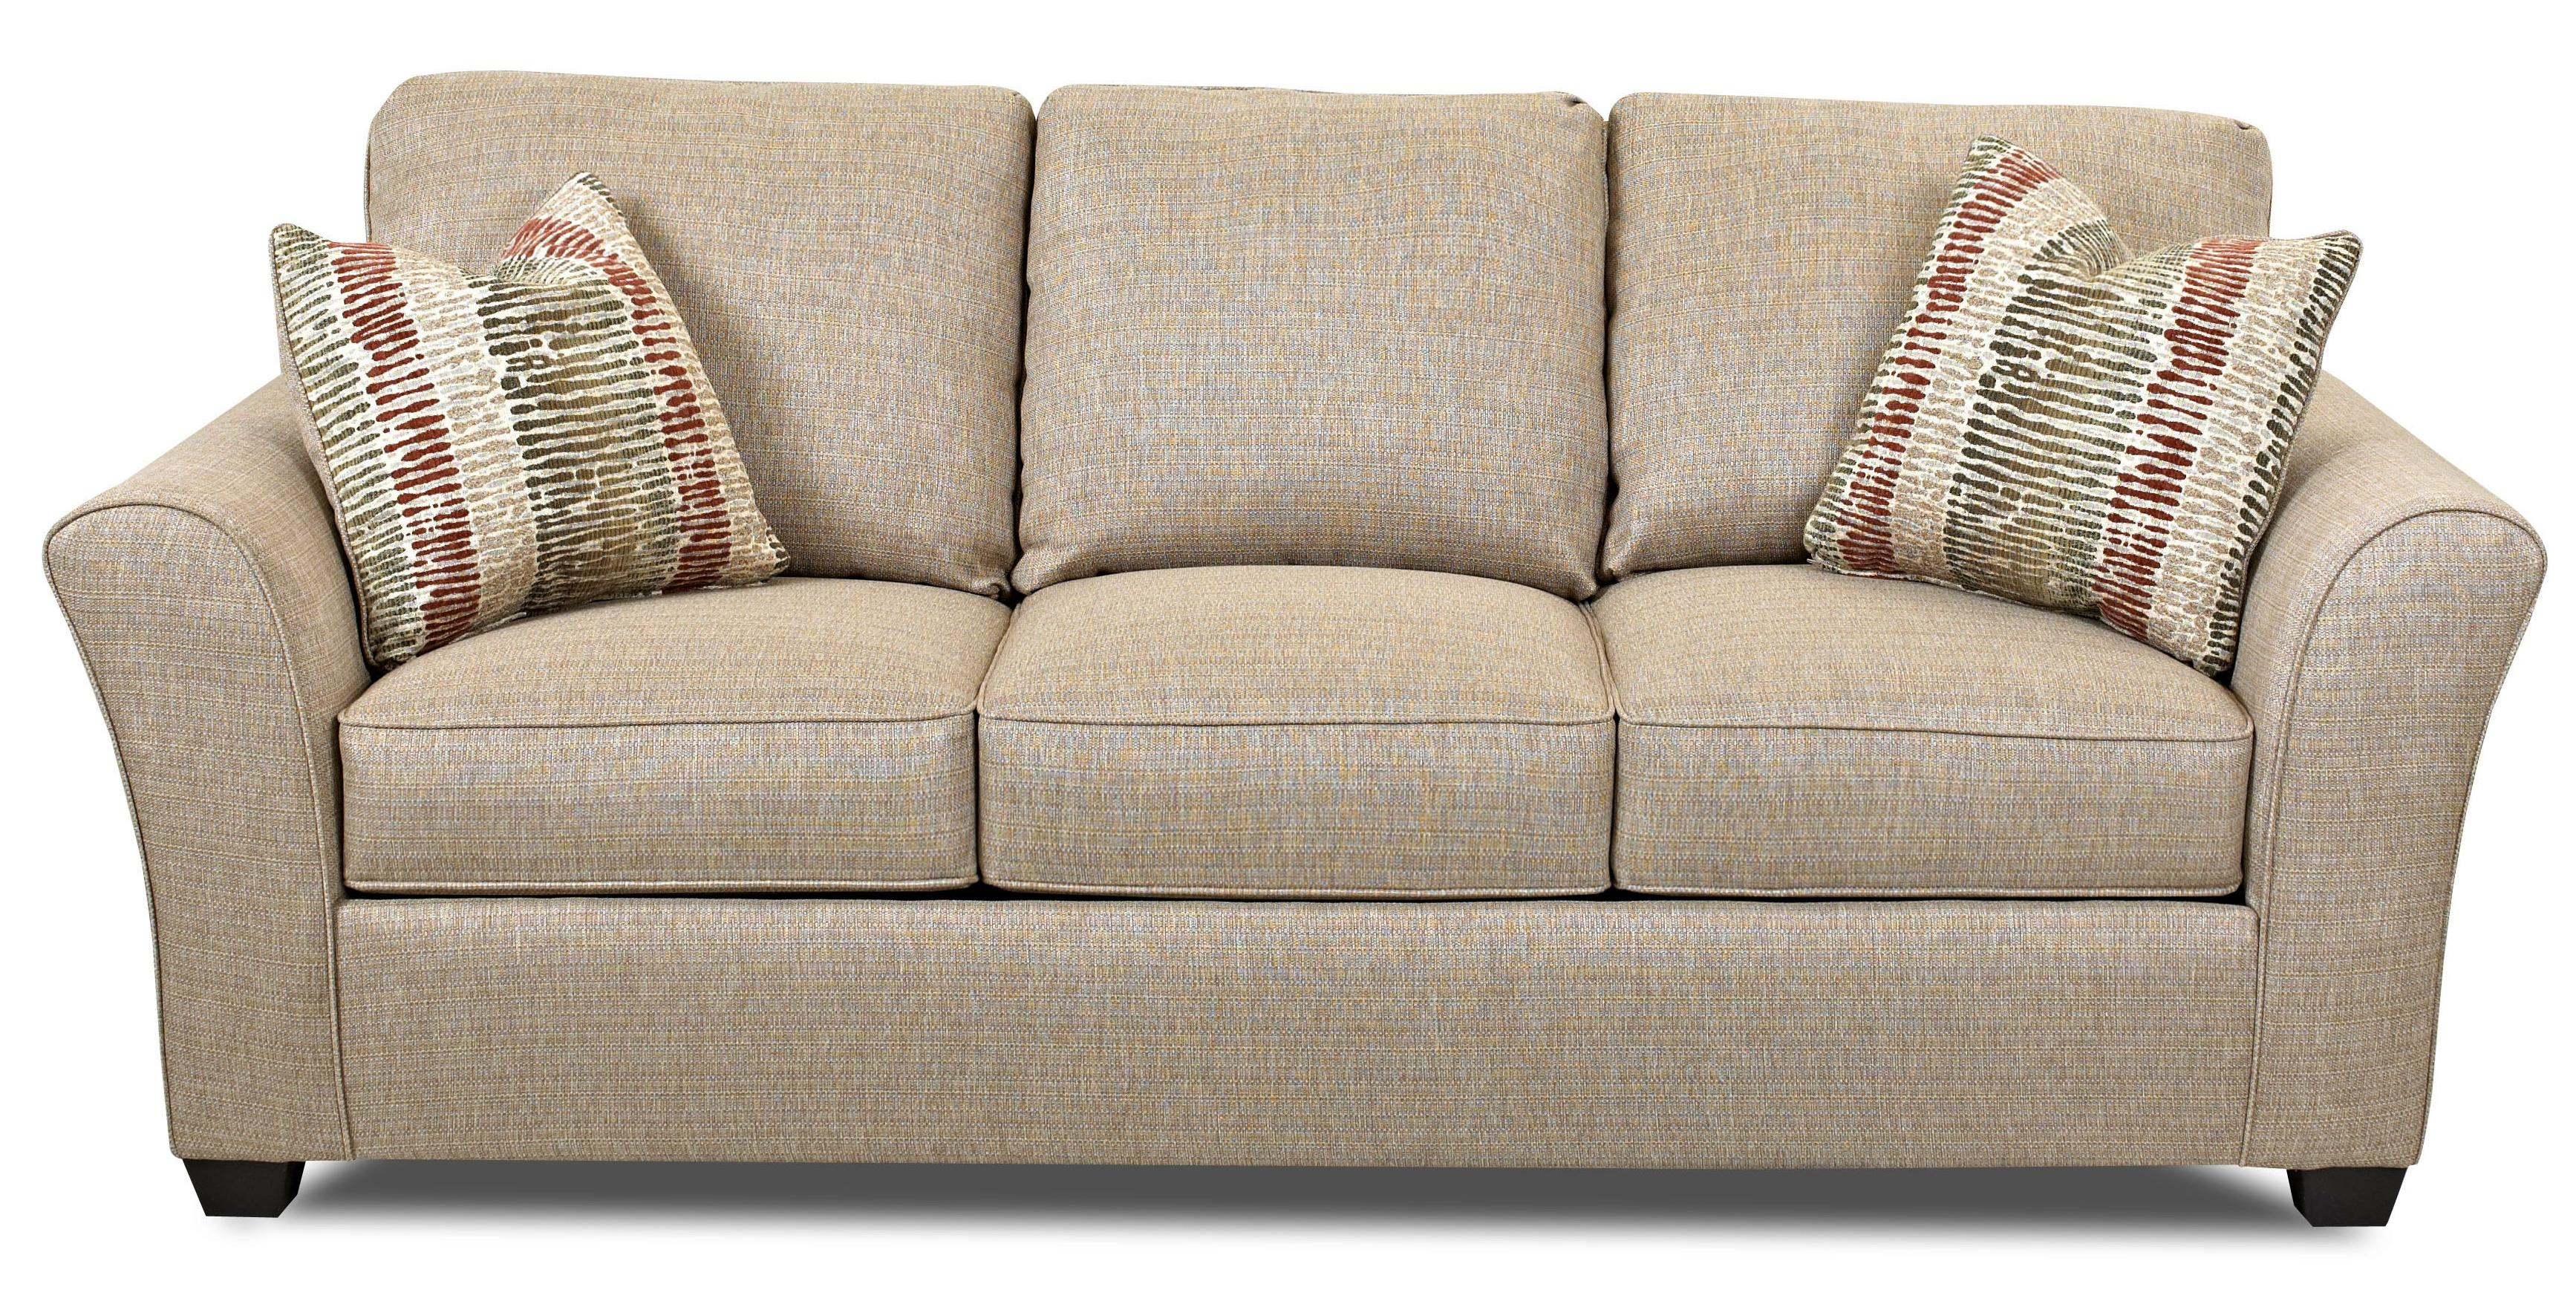 Klaussner Sedgewick Transitional Sofa With Flared Arms